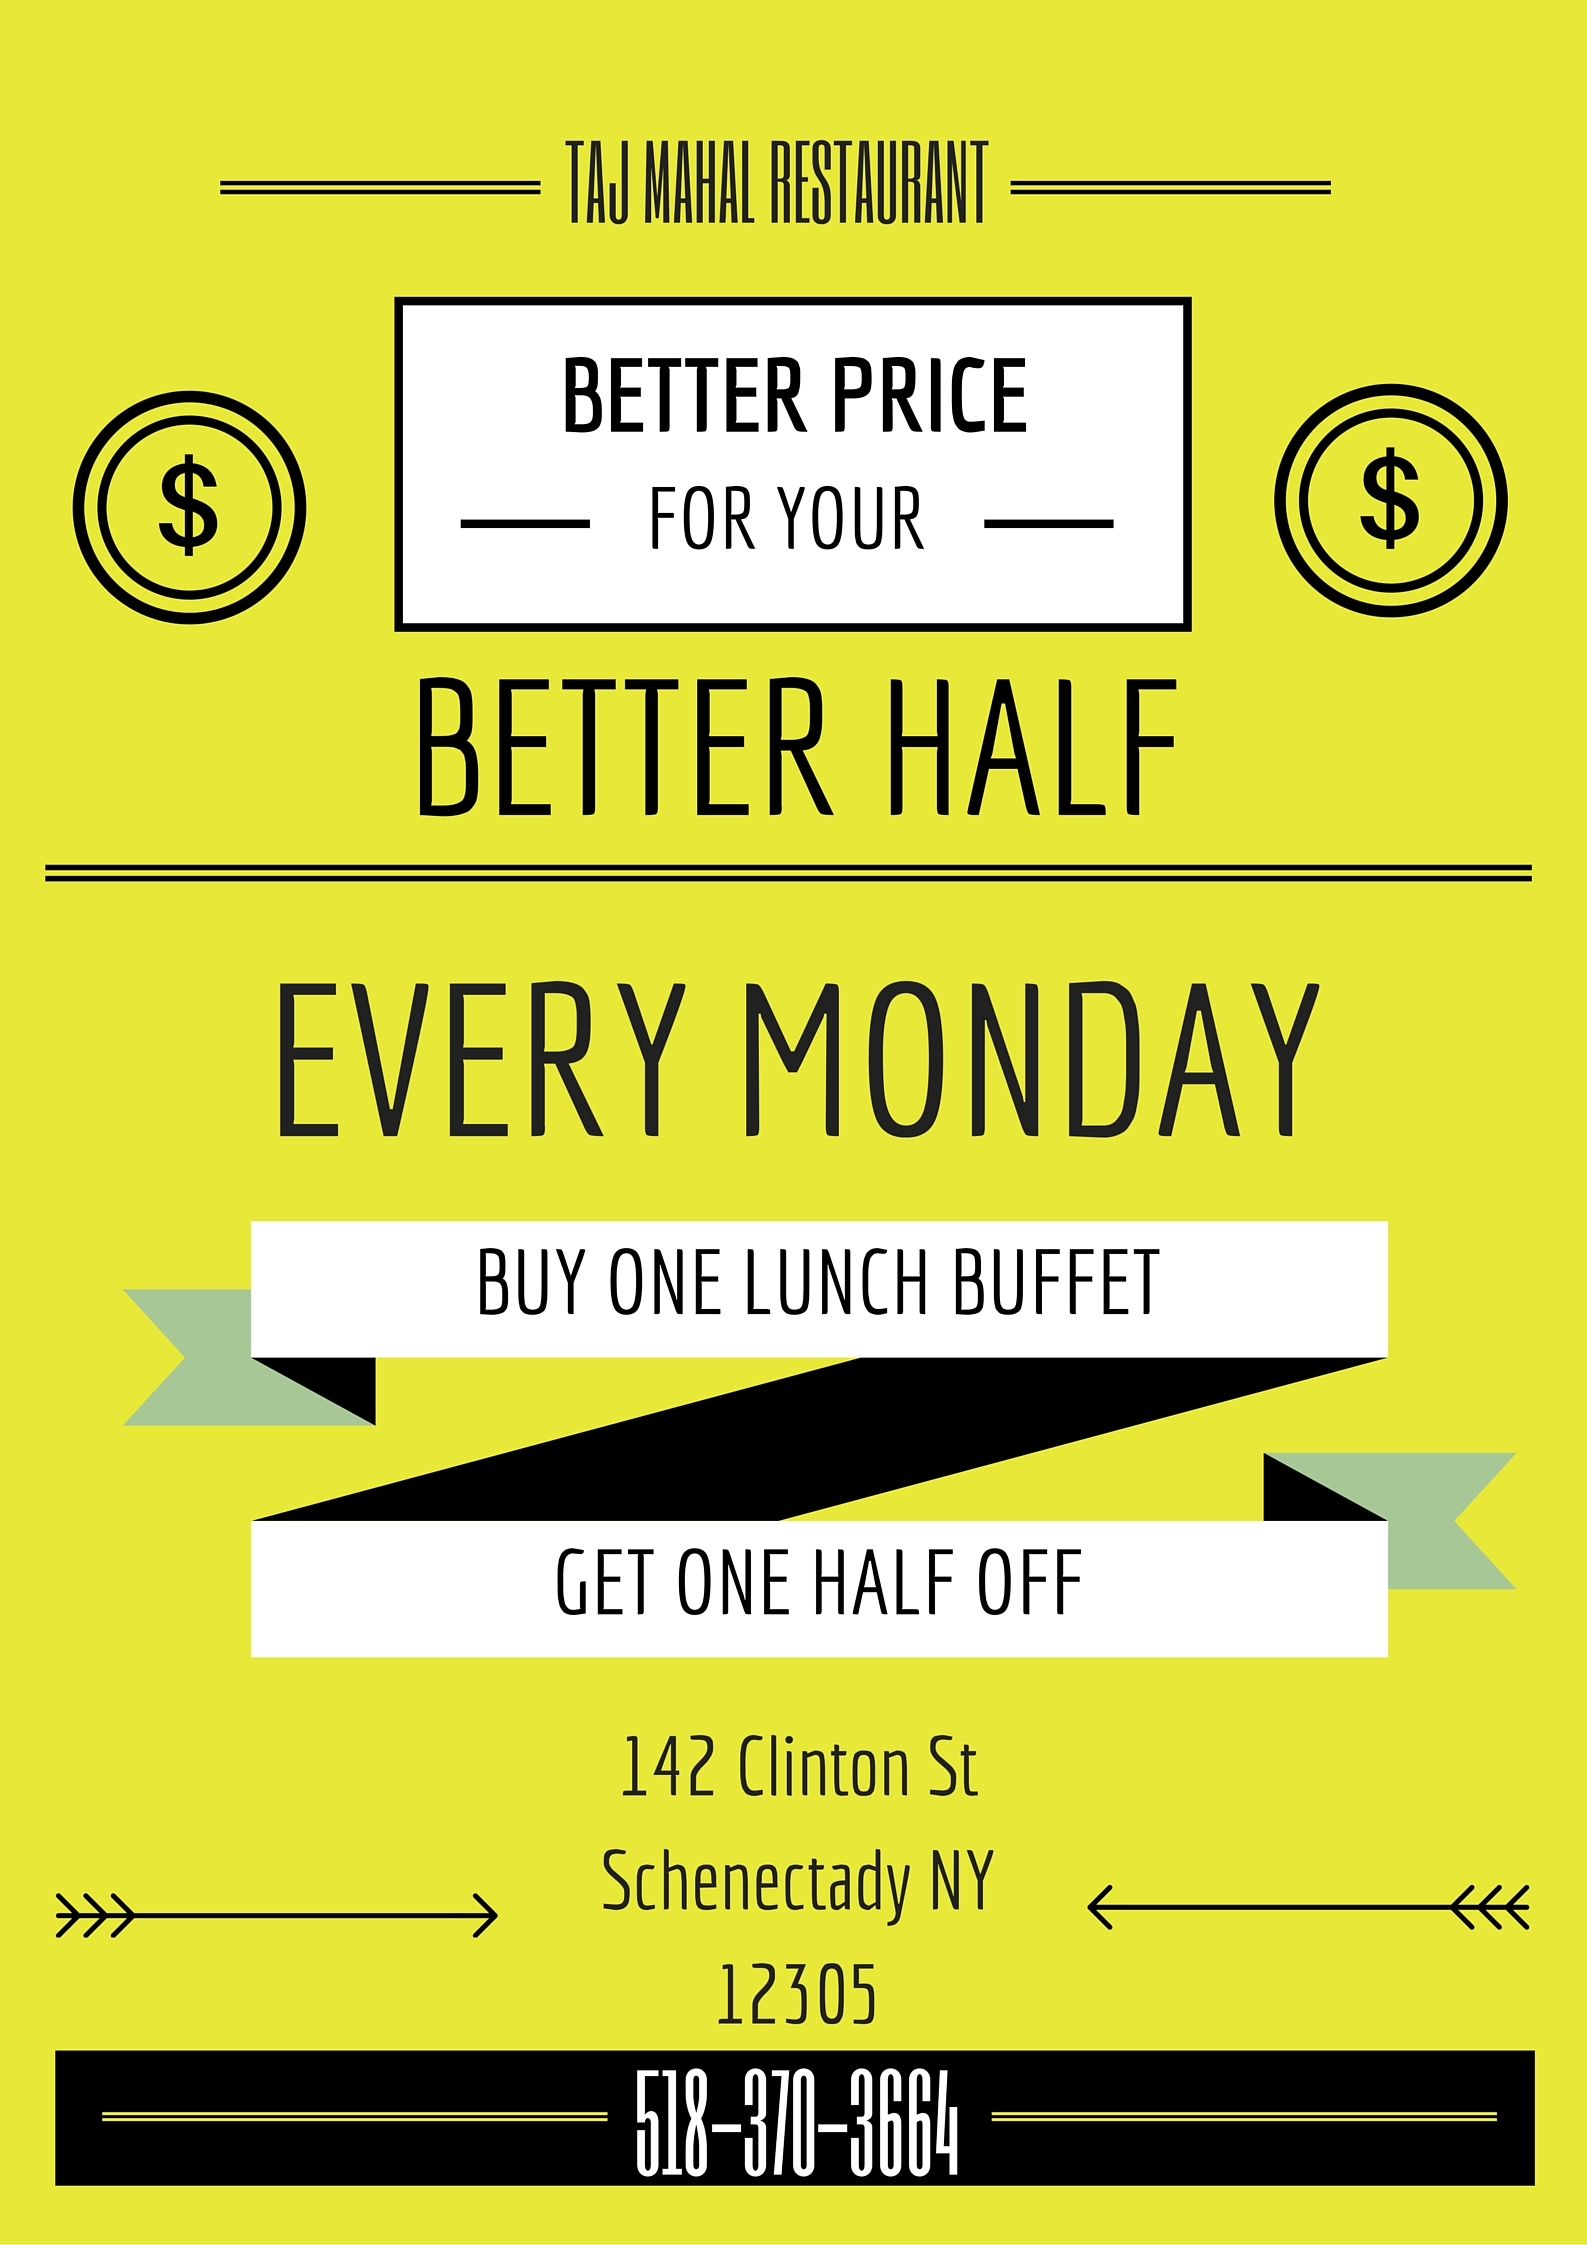 Every Monday buy one lunch buffet get one half off for a total of $15 flat for two people.